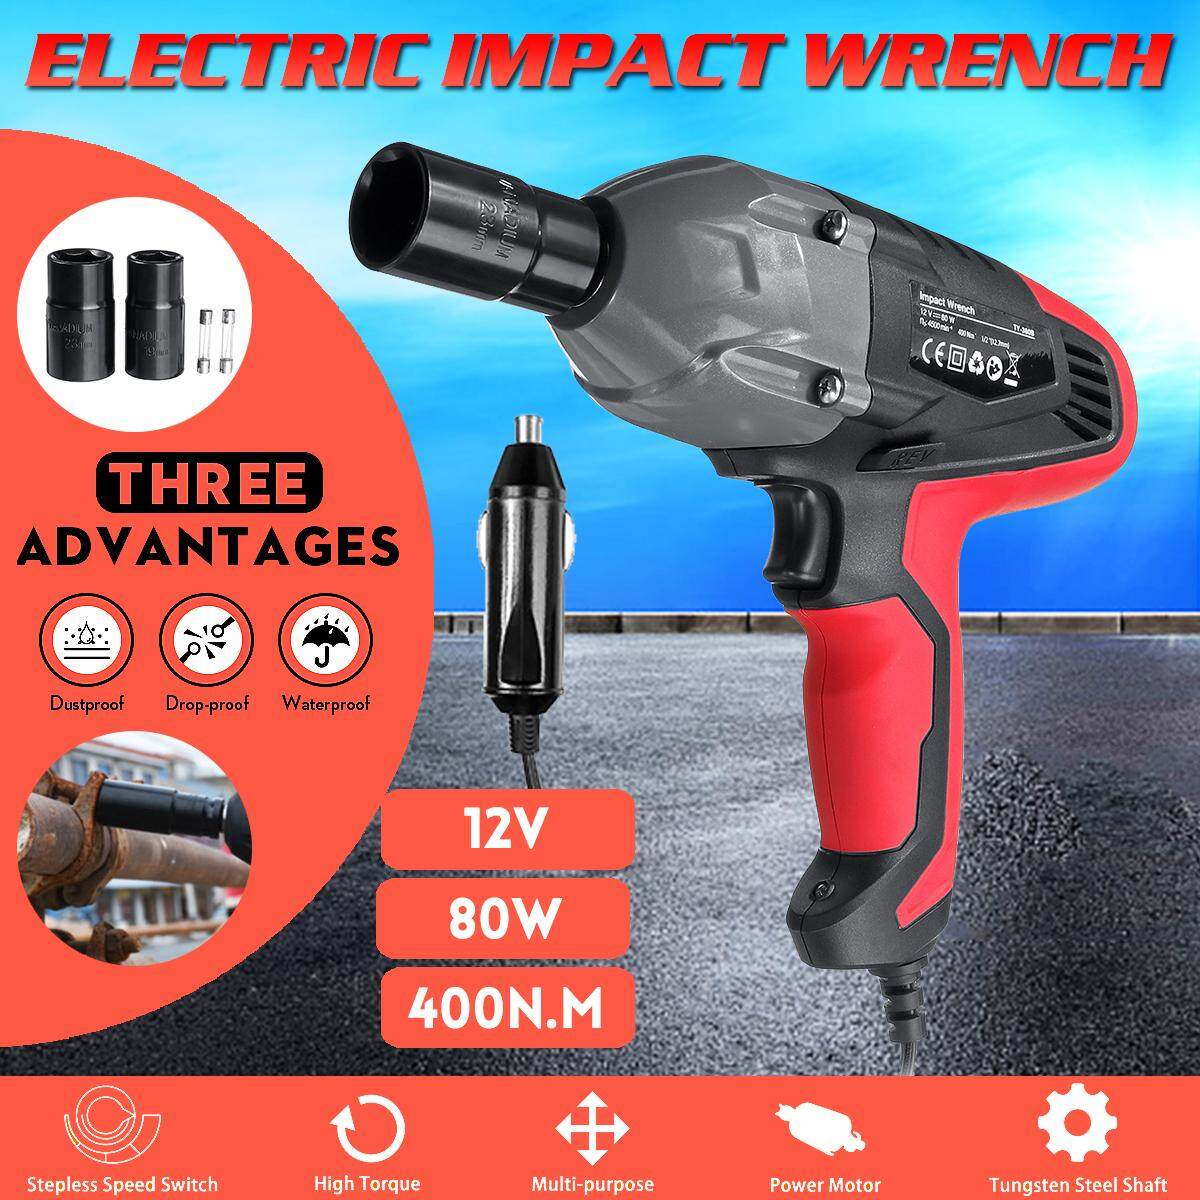 12V 1/2  400N.M Electric Impact Wrench Torque Tire Change Tool W/ LED Light